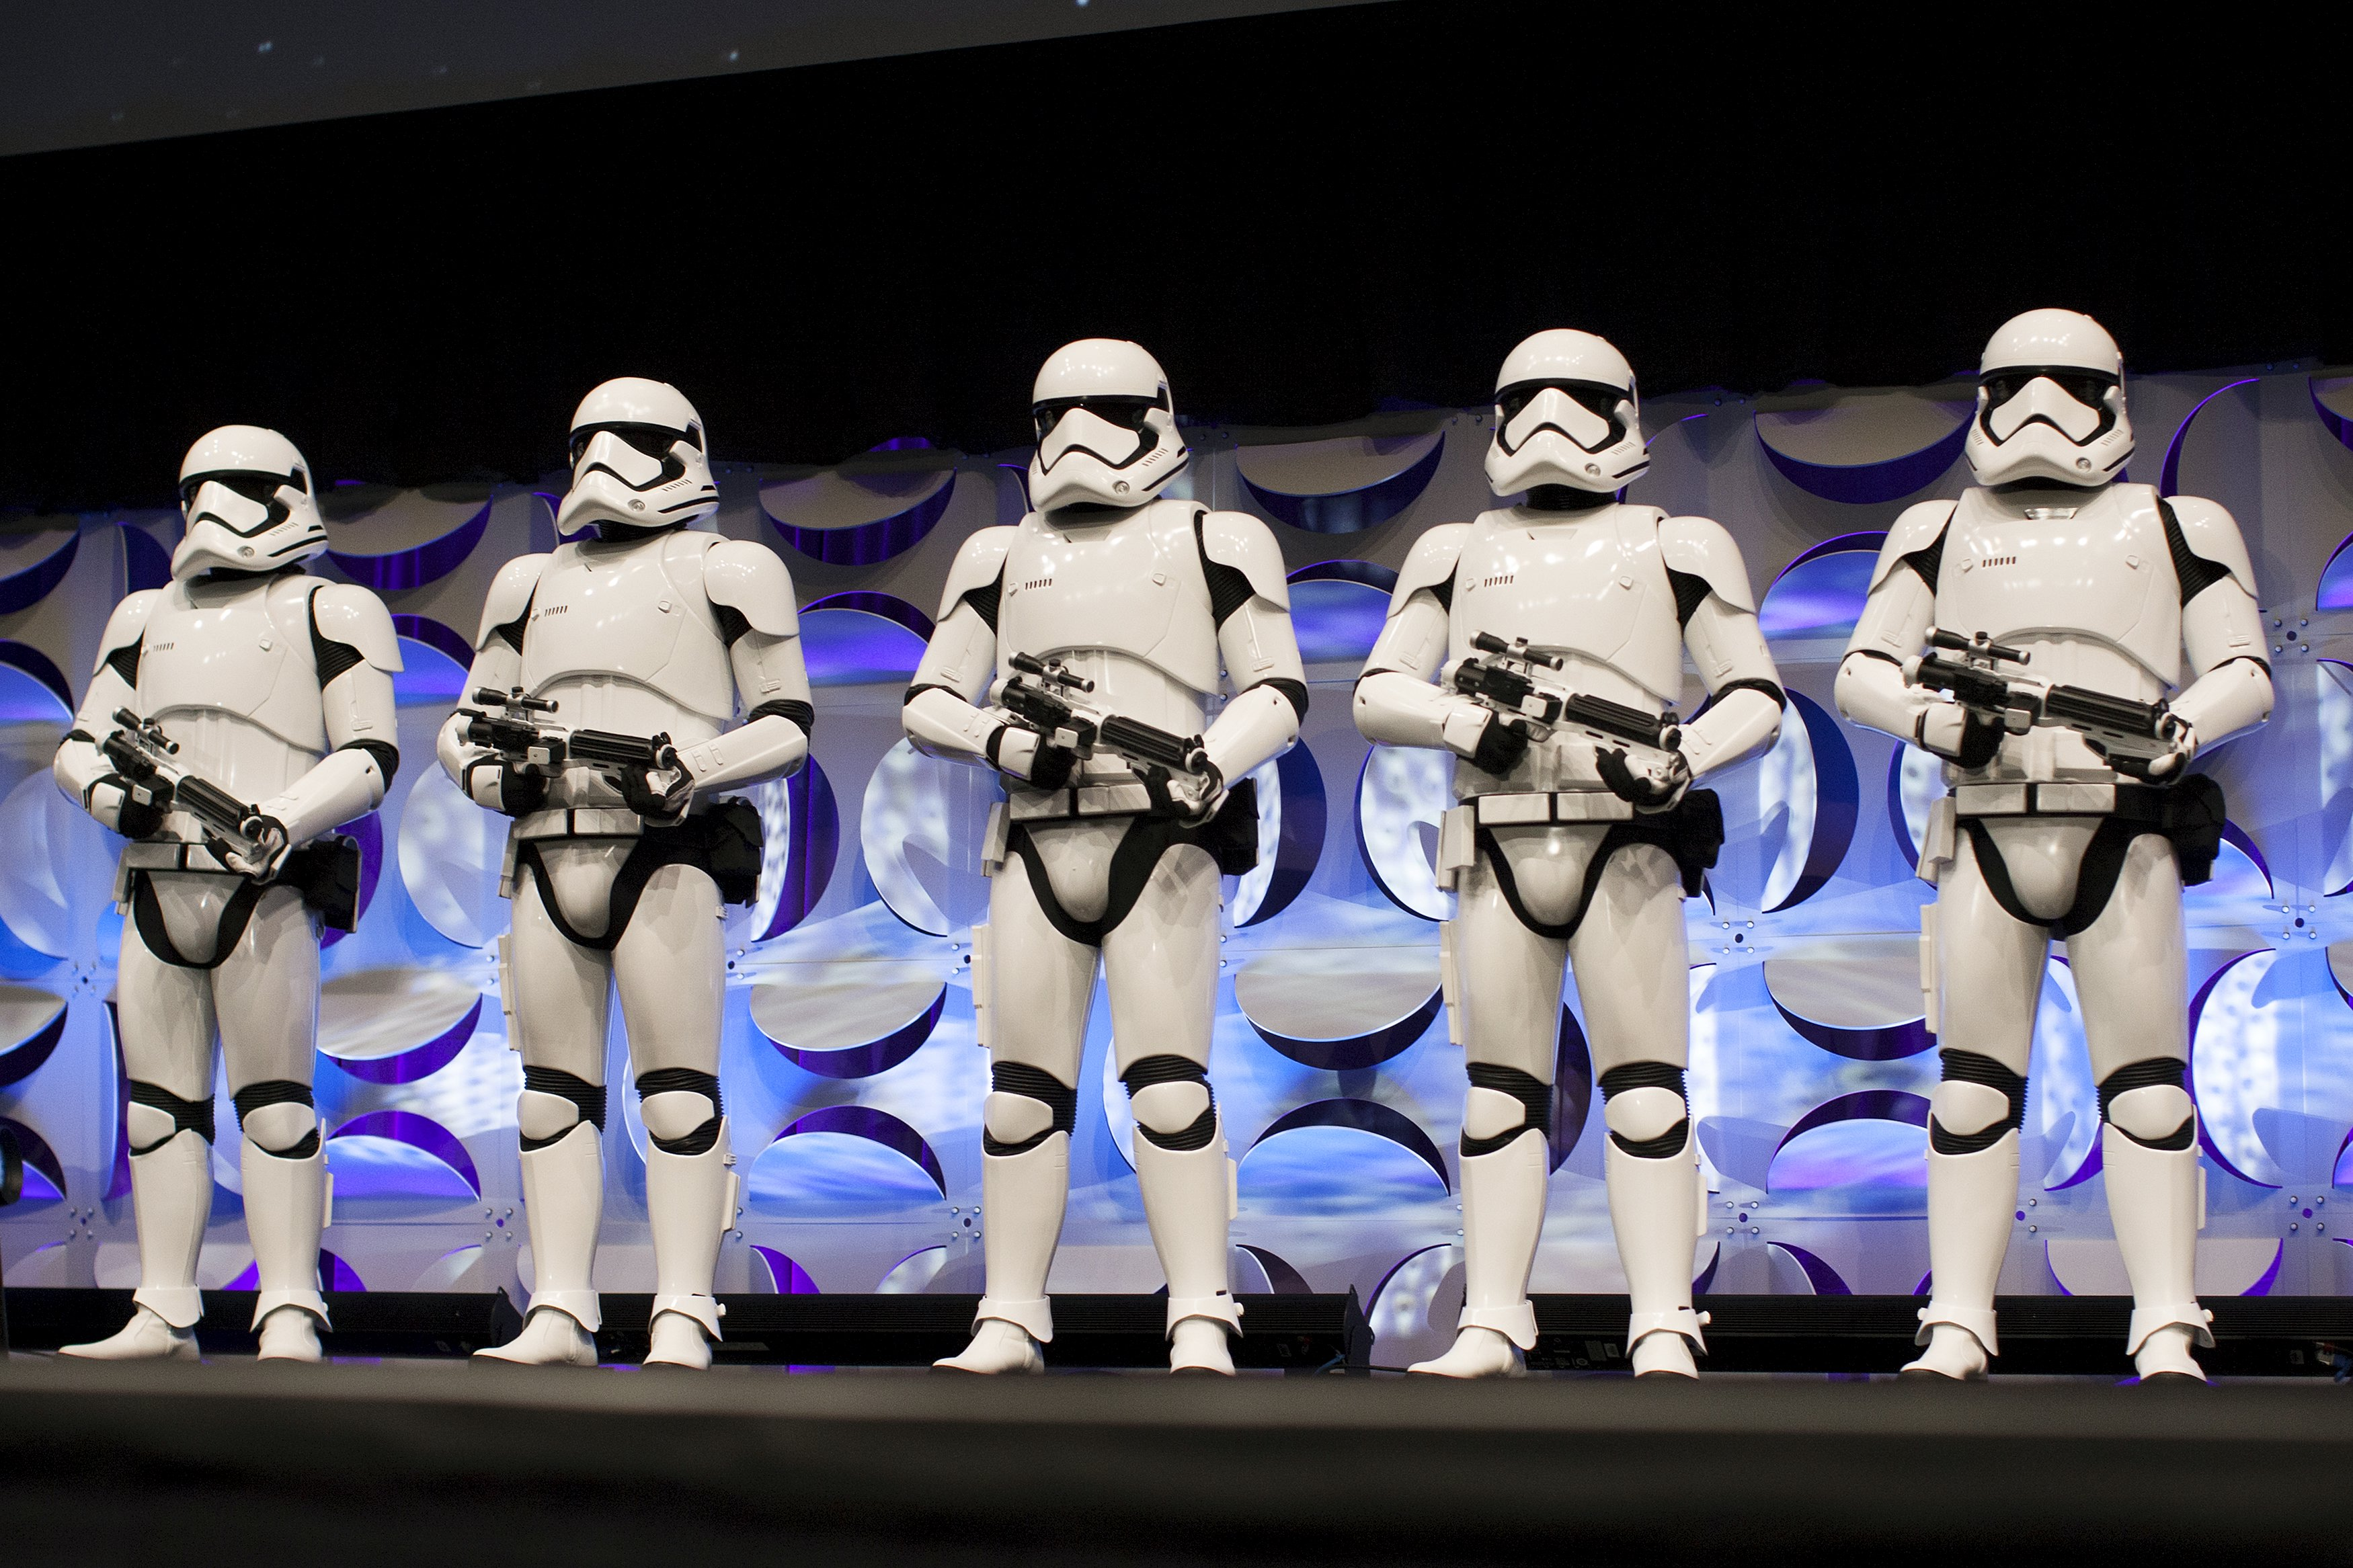 Redesigned Stormtroopers appear onstage at the kick-off event of the Star Wars Celebration in Anaheim, California, April 17, 2015. — Reuters pic